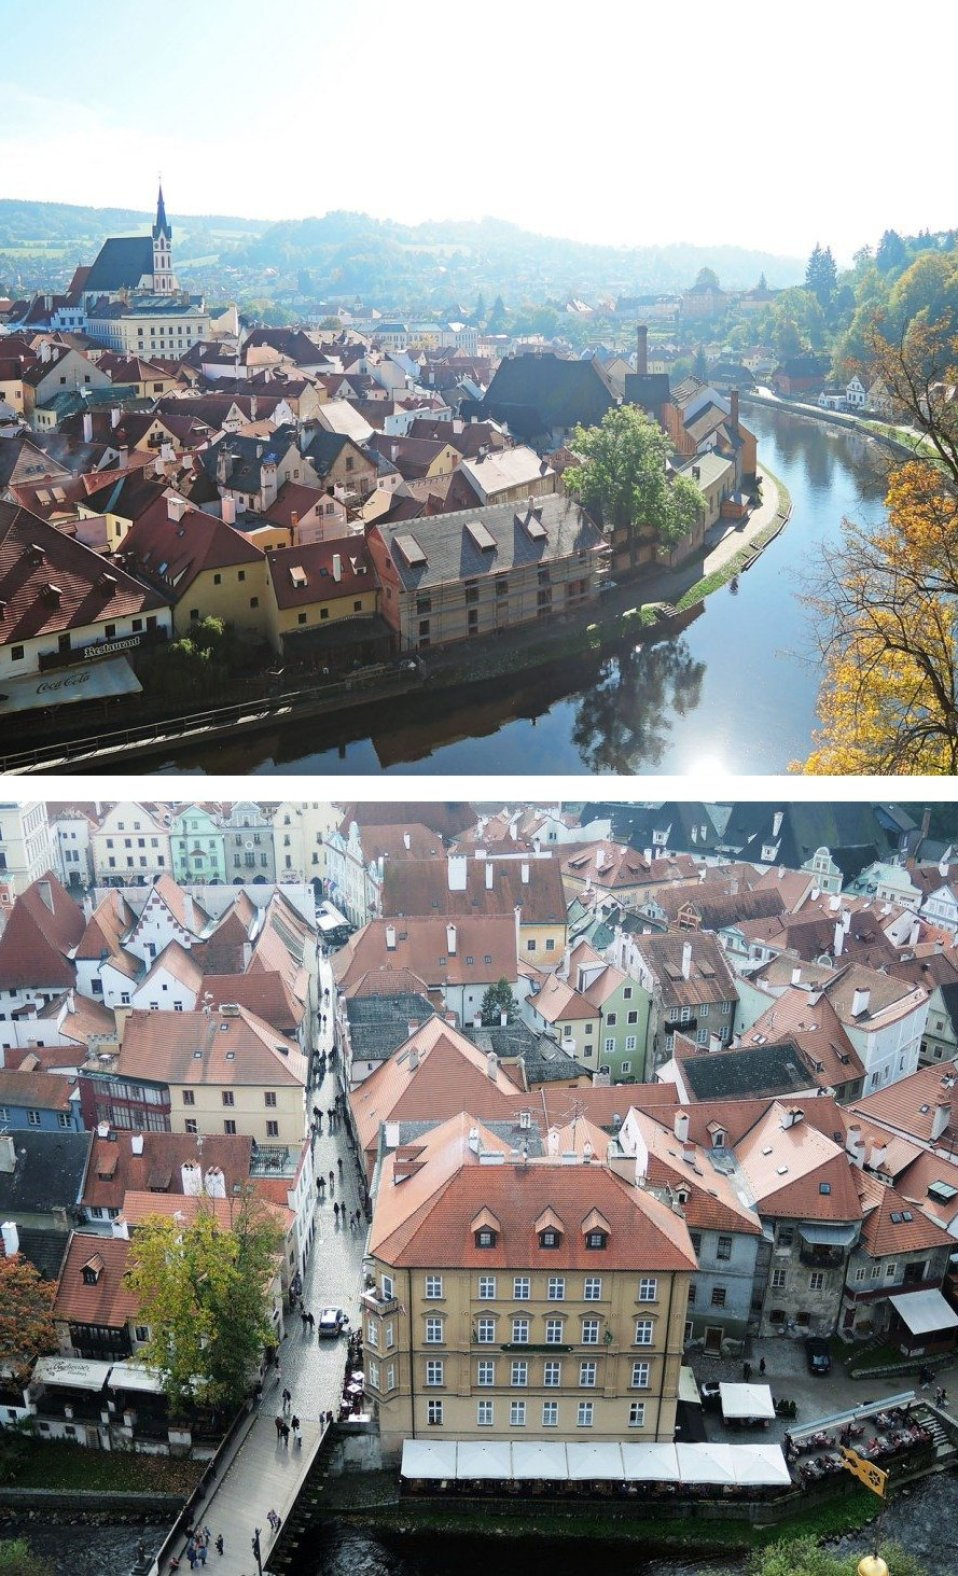 Cesky Krumlov's twisted streets and scenic vistas will have you falling hard for this medieval town. Walk around its charming cobbled streets and gorgeous castle grounds, get to know its royal families and artists, and enjoy a magical evening on the banks of Vltava for a holiday to remember.